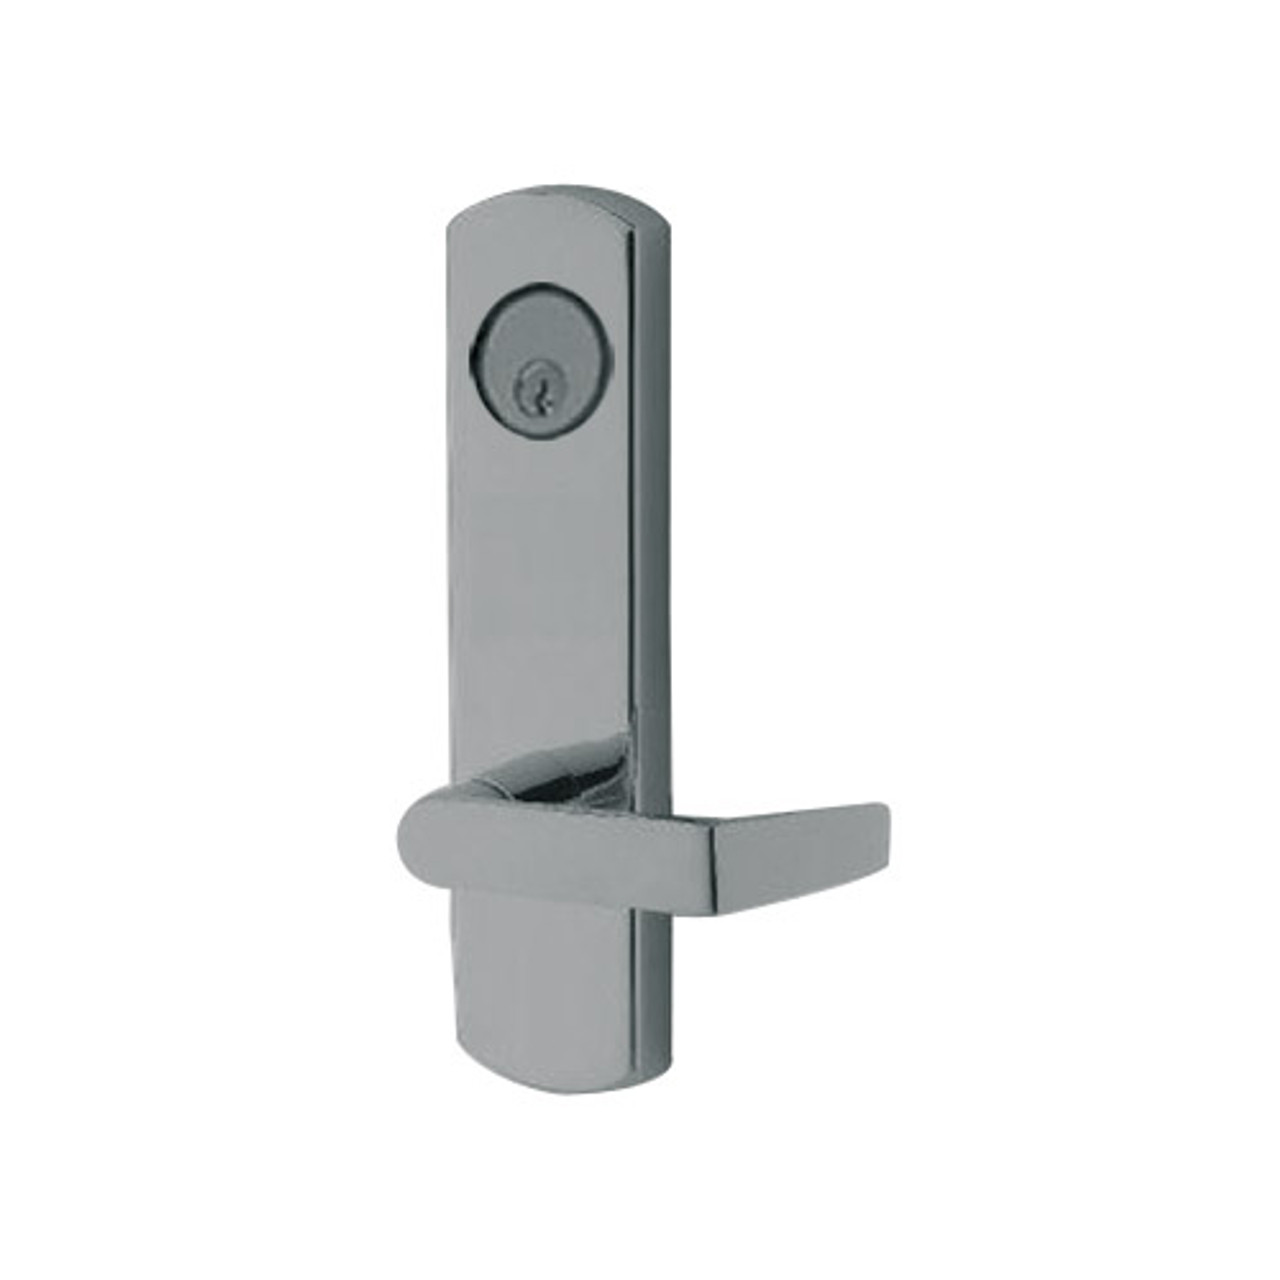 3080-03-0-97-US32D Adams Rite Standard Entry Trim with Square Lever in Satin Stainless Finish